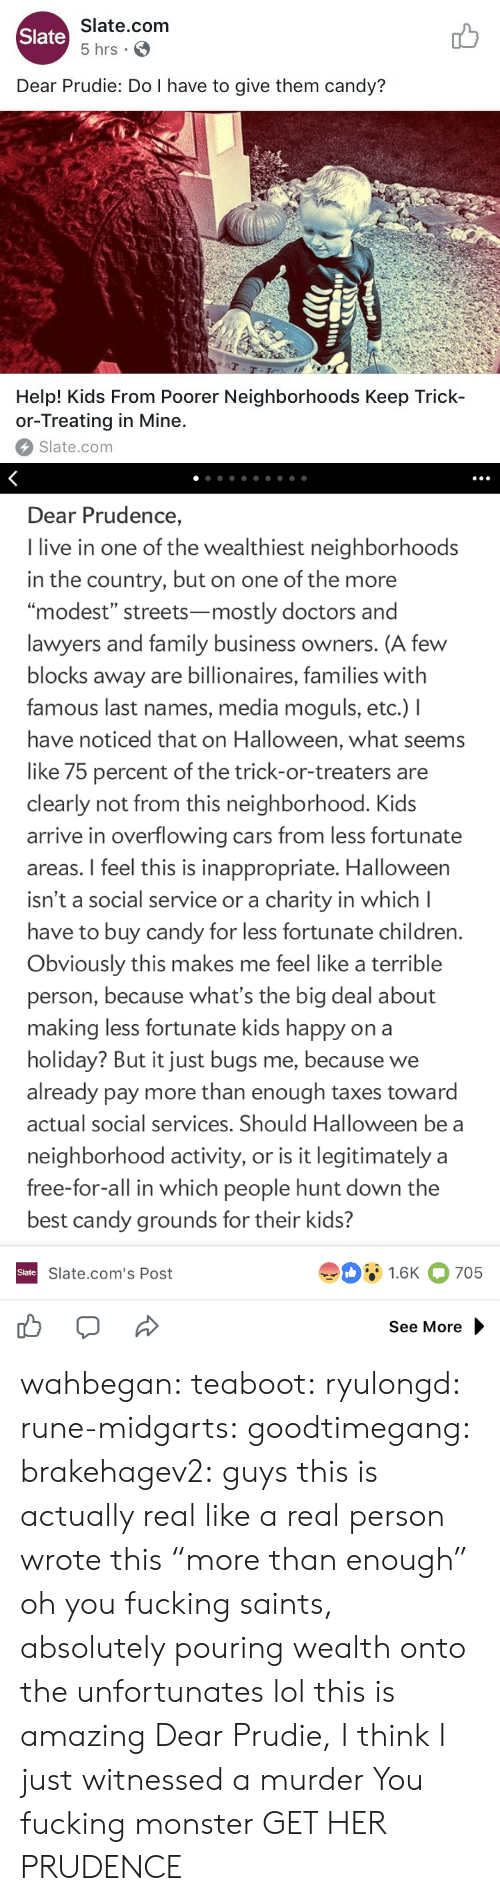 """last names: Slate.com  5 hrs .  Slate  Dear Prudie: Do I have to give them candy?  aT  T-T  Help! Kids From Poorer Neighborhoods Keep Trick-  or-Treating in Mine.  Slate.com   Dear Prudence,  I live in one of the wealthiest neighborhoods  in the country, but on one of the more  """"modest"""" streets-mostly doctors and  lawyers and family business owners. (A few  blocks away are billionaires, families with  famous last names, media moguls, etc.) I  have noticed that on Halloween, what seems  like 75 percent of the trick-or-treaters are  clearly not from this neighborhood. Kids  arrive in overflowing cars from less fortunate  areas. I feel this is inappropriate. Halloween  isn't a social service or a charity in which l  have to buy candy for less fortunate children  Obviously this makes me feel like a terrible  person, because what's the big deal about  making less fortunate kids happy on a  holiday? But it just bugs me, because we  already pay more than enough taxes toward  actual social services. Should Halloween be a  neighborhood activity, or is it legitimately a  free-for-all in which people hunt down the  best candy grounds for their kids?  91.6K 705  Slate  Slate.com's Post  See More wahbegan: teaboot:  ryulongd:  rune-midgarts:  goodtimegang:  brakehagev2:  guys this is actually real like a real person wrote this  """"more than enough"""" oh you fucking saints, absolutely pouring wealth onto the unfortunates   lol this is amazing   Dear Prudie, I think I just witnessed a murder  You fucking monster  GET HER PRUDENCE"""